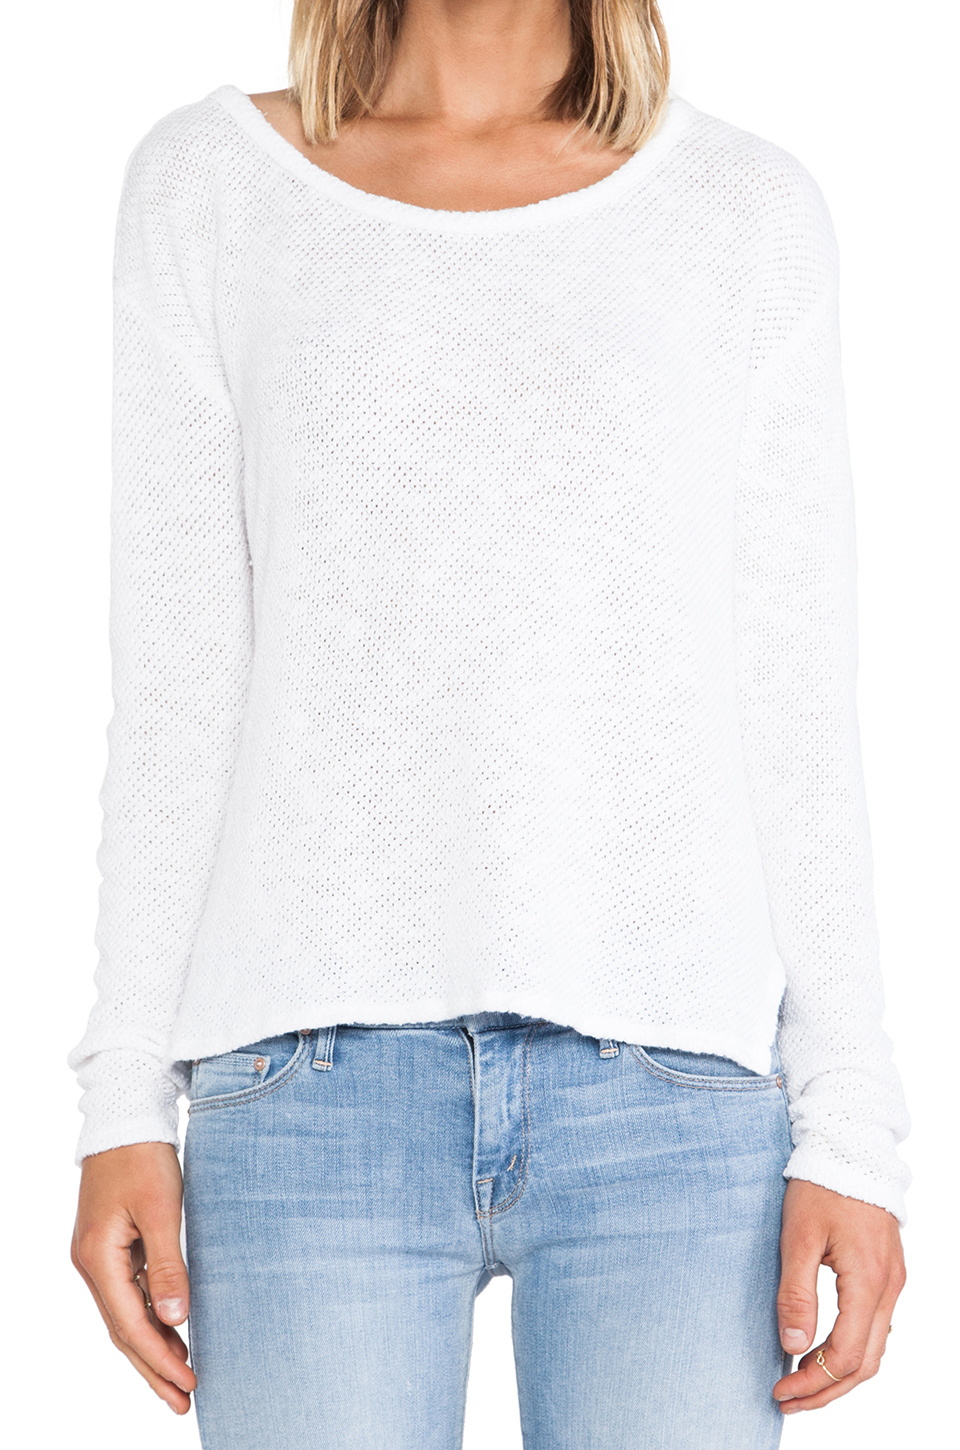 Velvet by Graham & Spencer Peta Cotton Crochet Sweater in White | REVOLVE